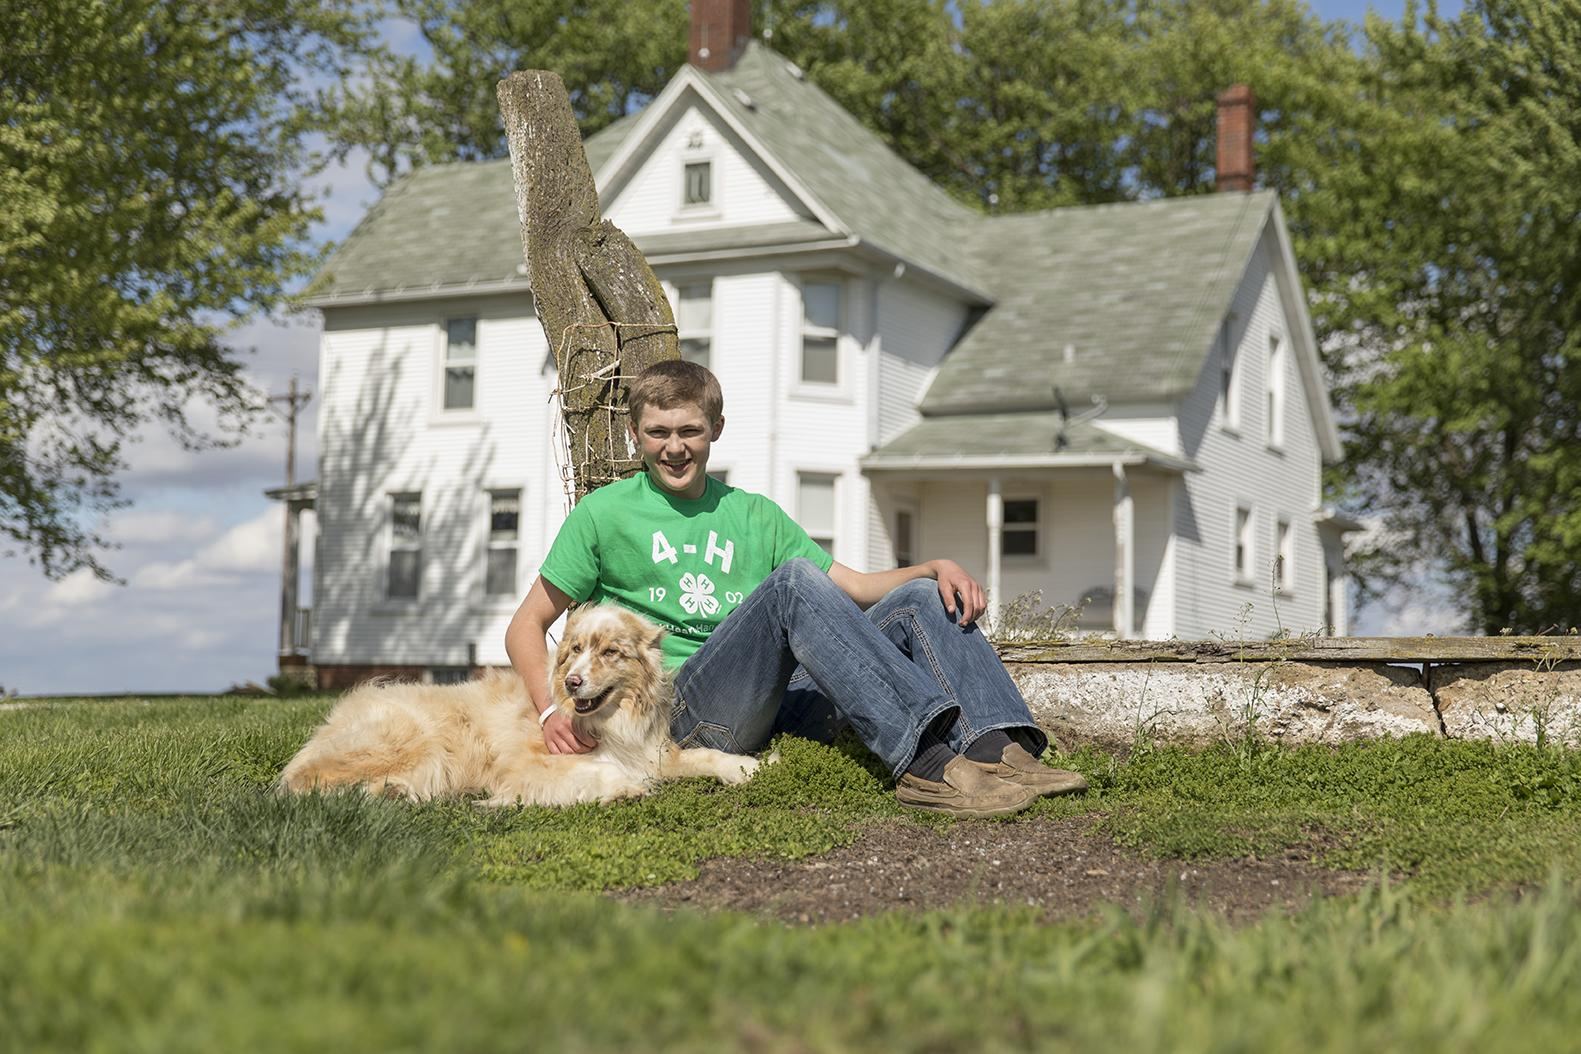 4-H'er sitting with his dog